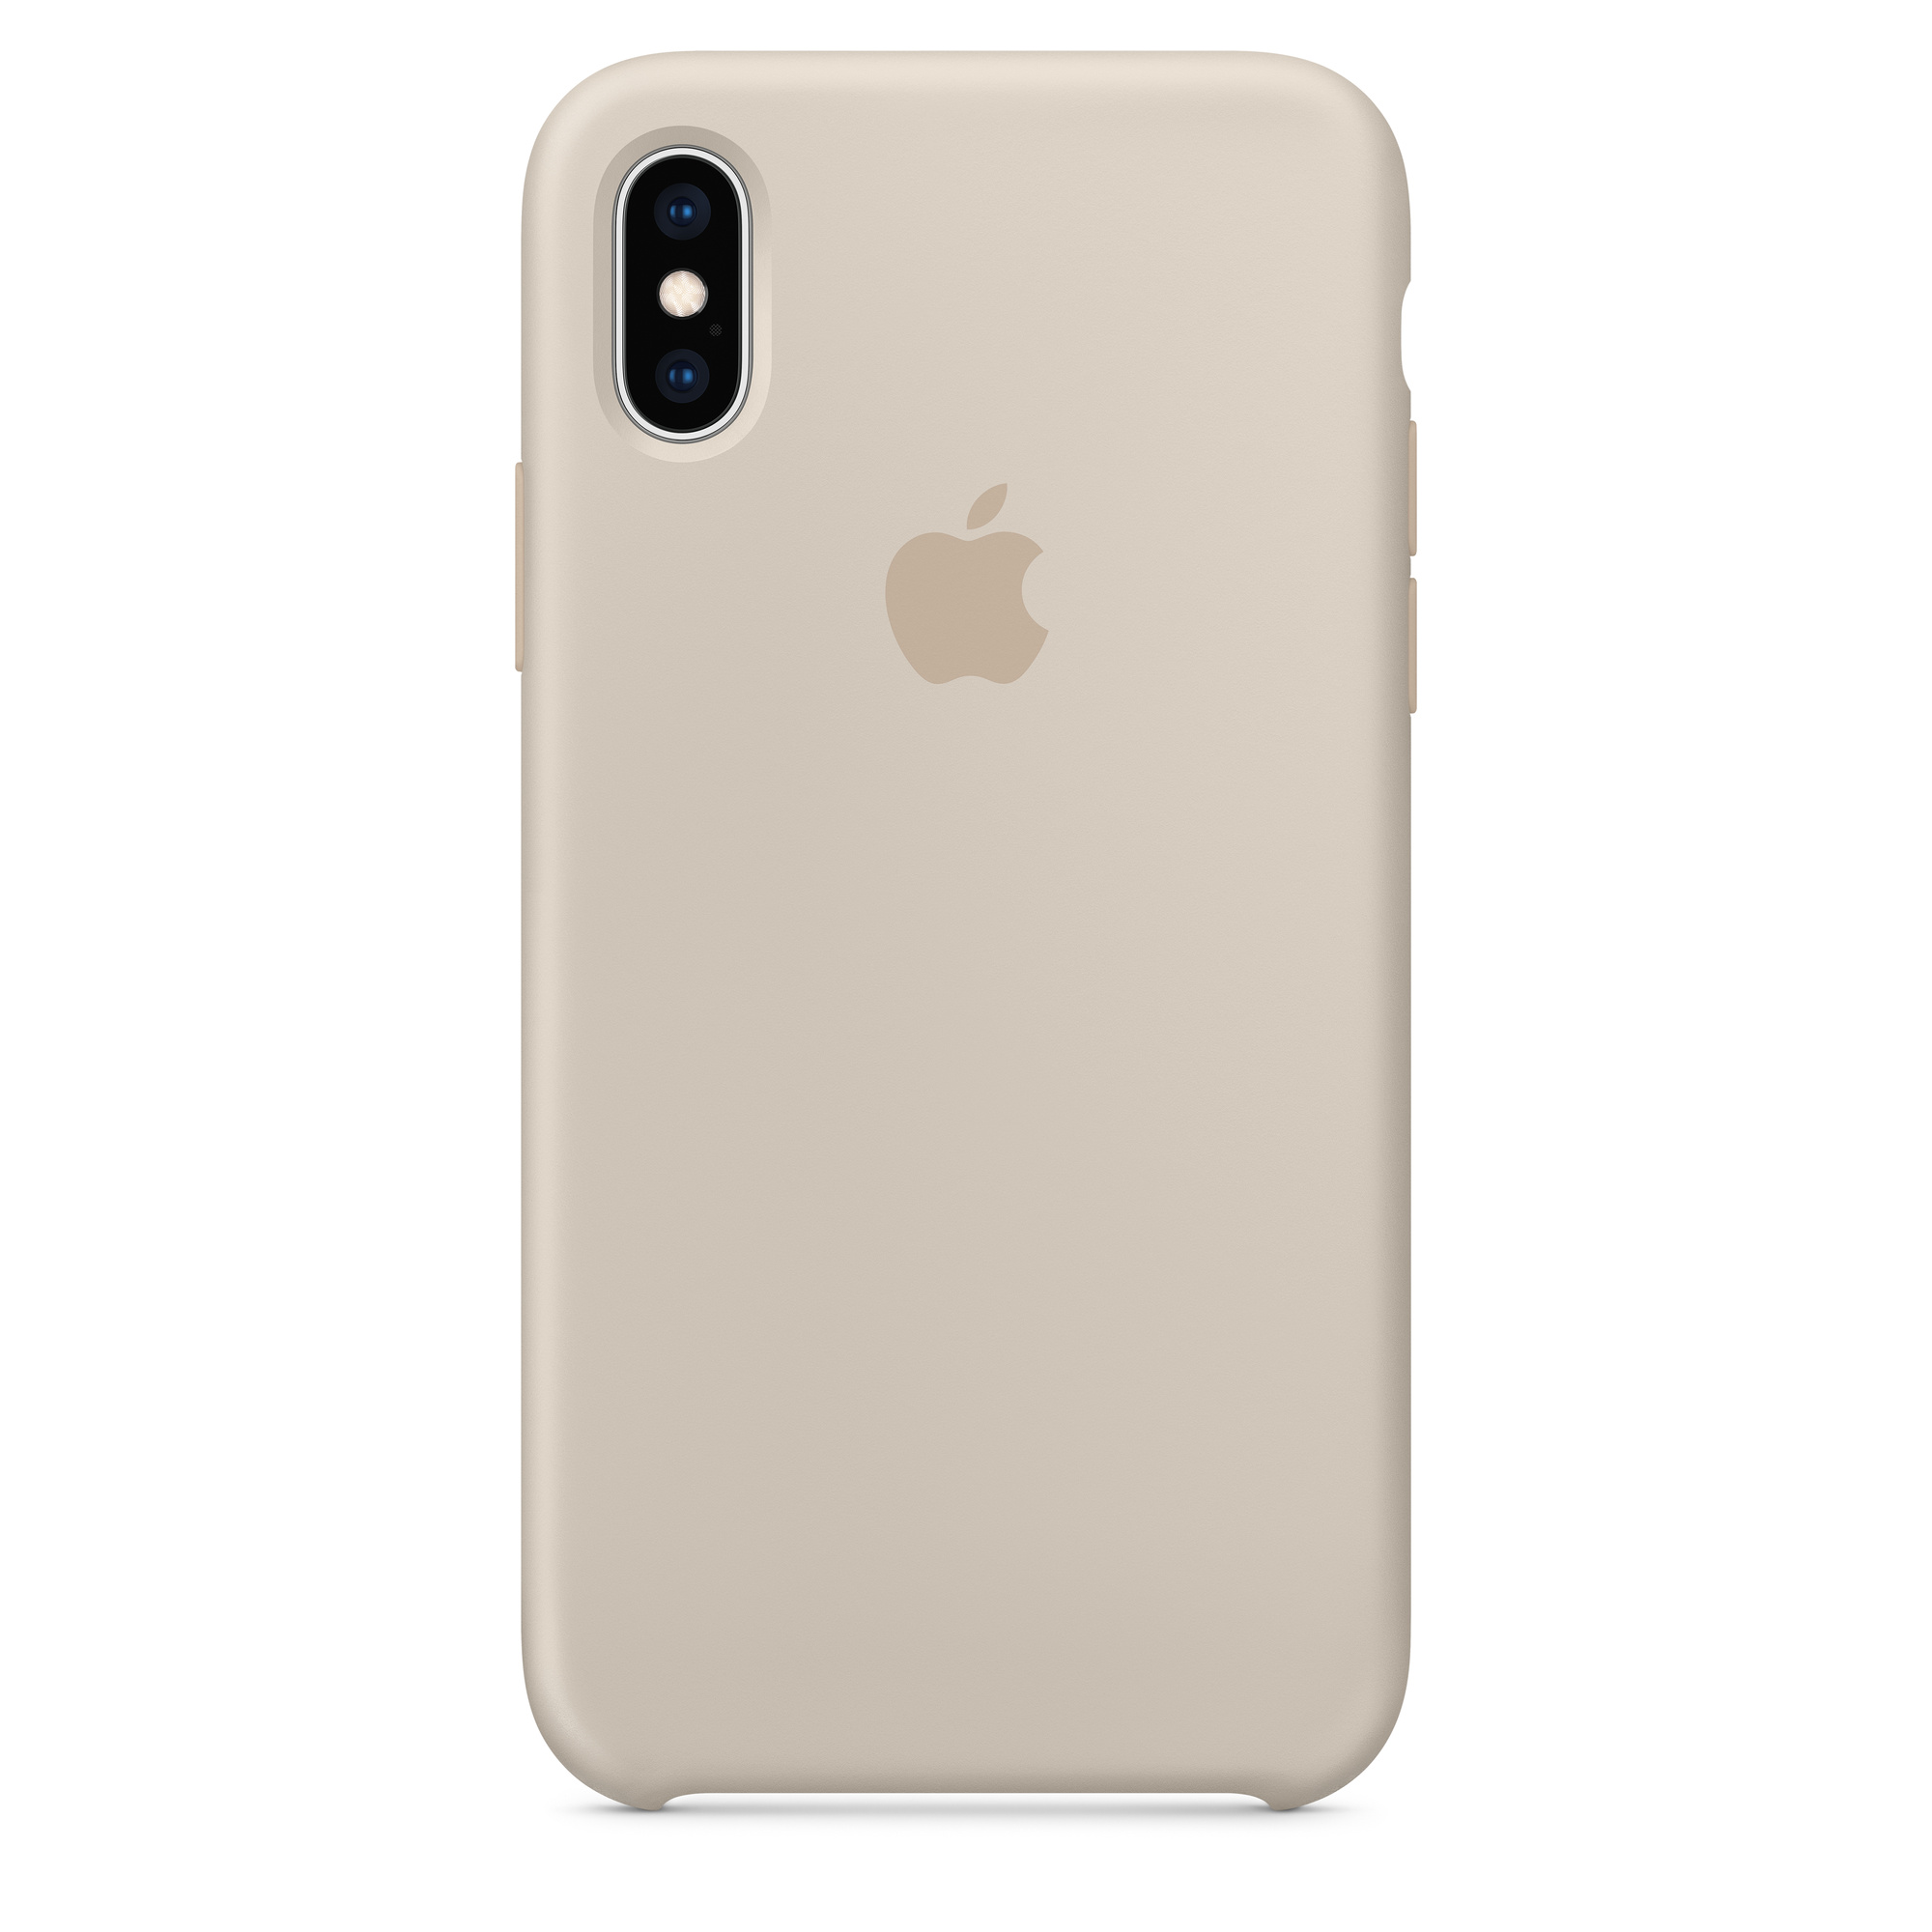 buy online 852e4 677cb iPhone XS Silicone Case - Stone